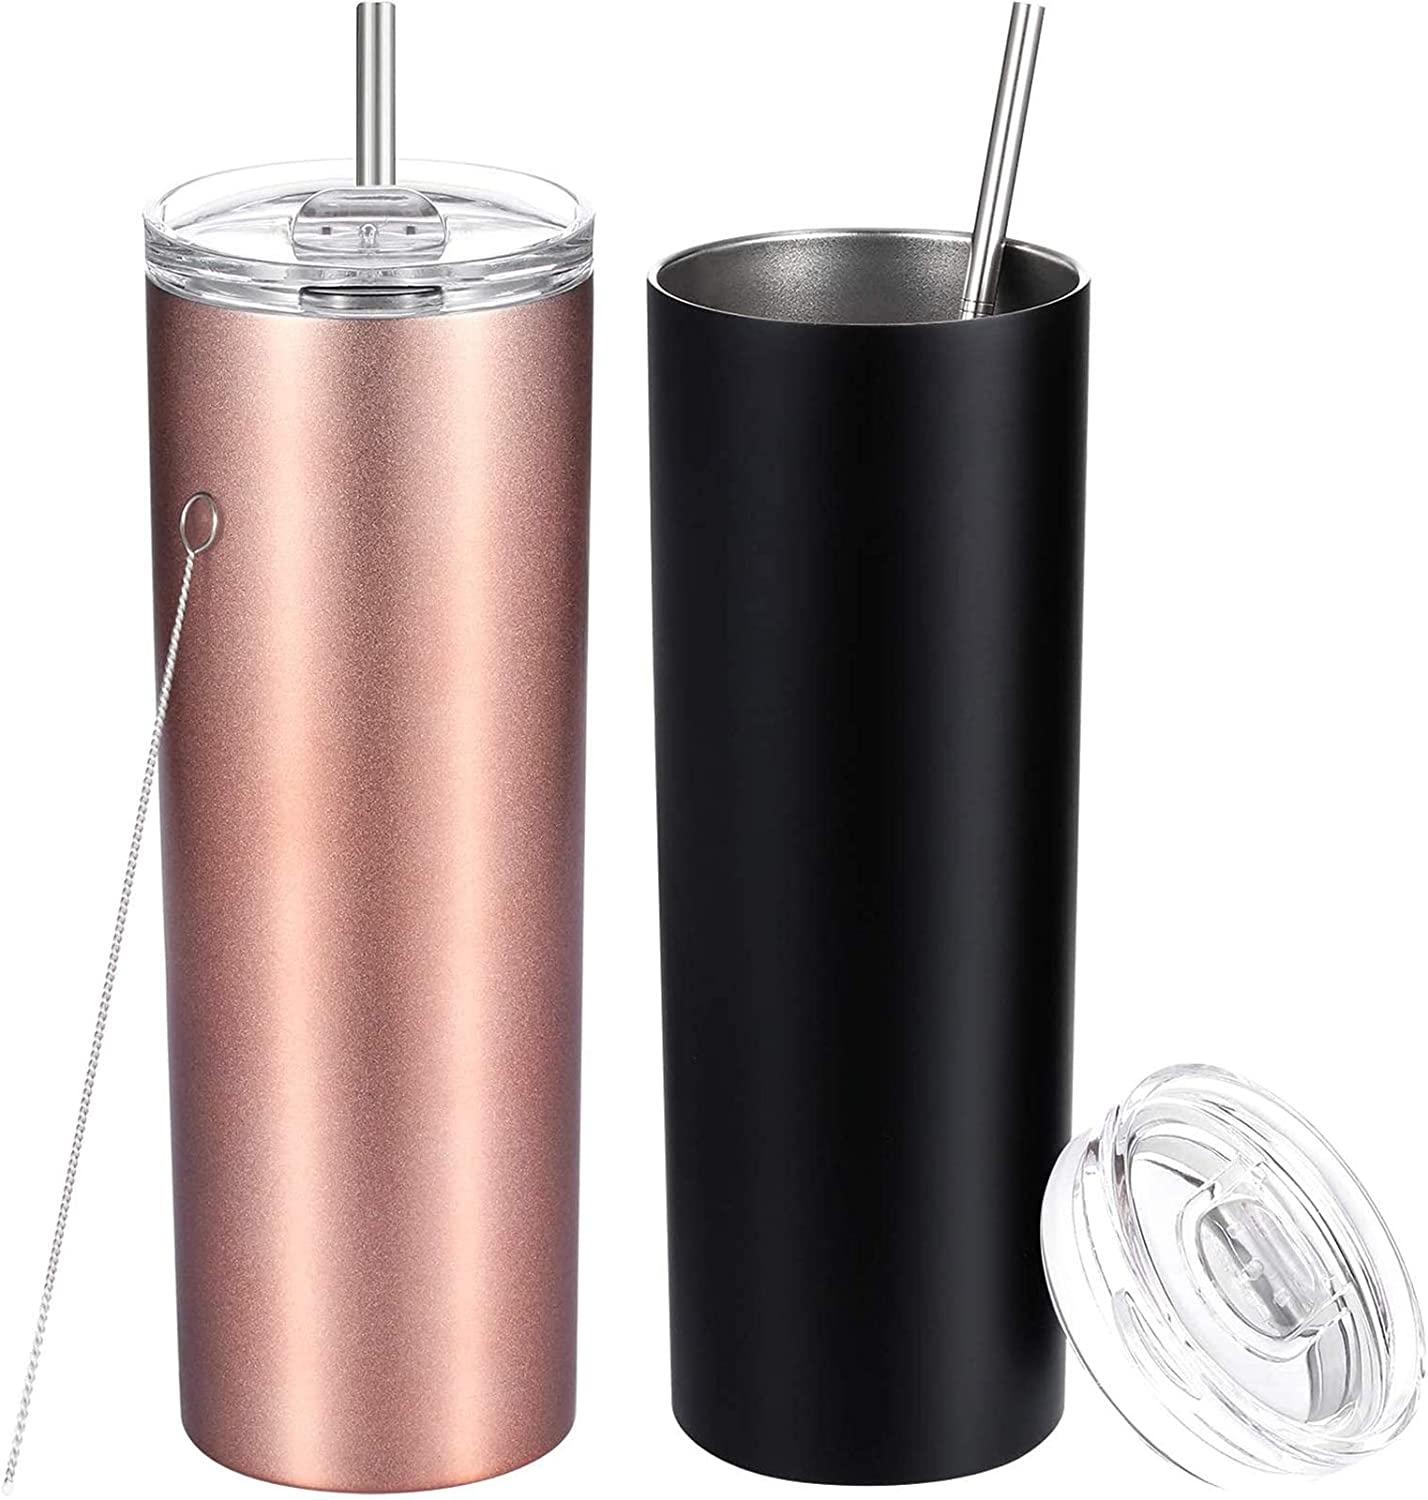 16//20oz Double Walled Tumbler Cup w//Straw Stainless Steel Insulated Water Bottle